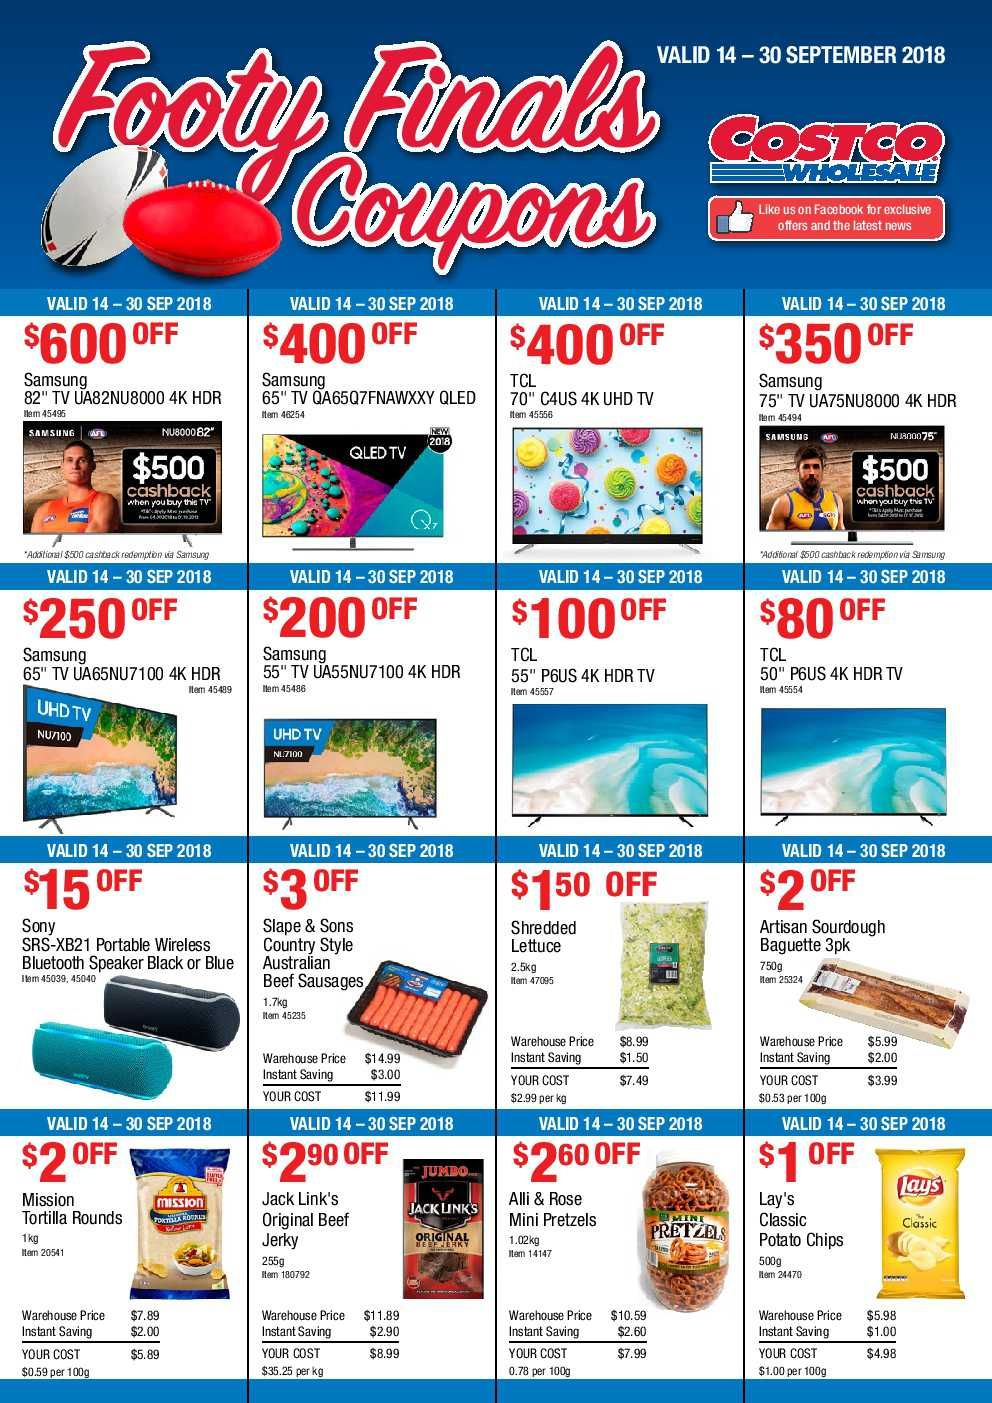 Costco Catalogue Coupon 14 30 September 2018 Http Olcatalogue Com Costco Costco Catalogue Html Costco Catalog Grocery